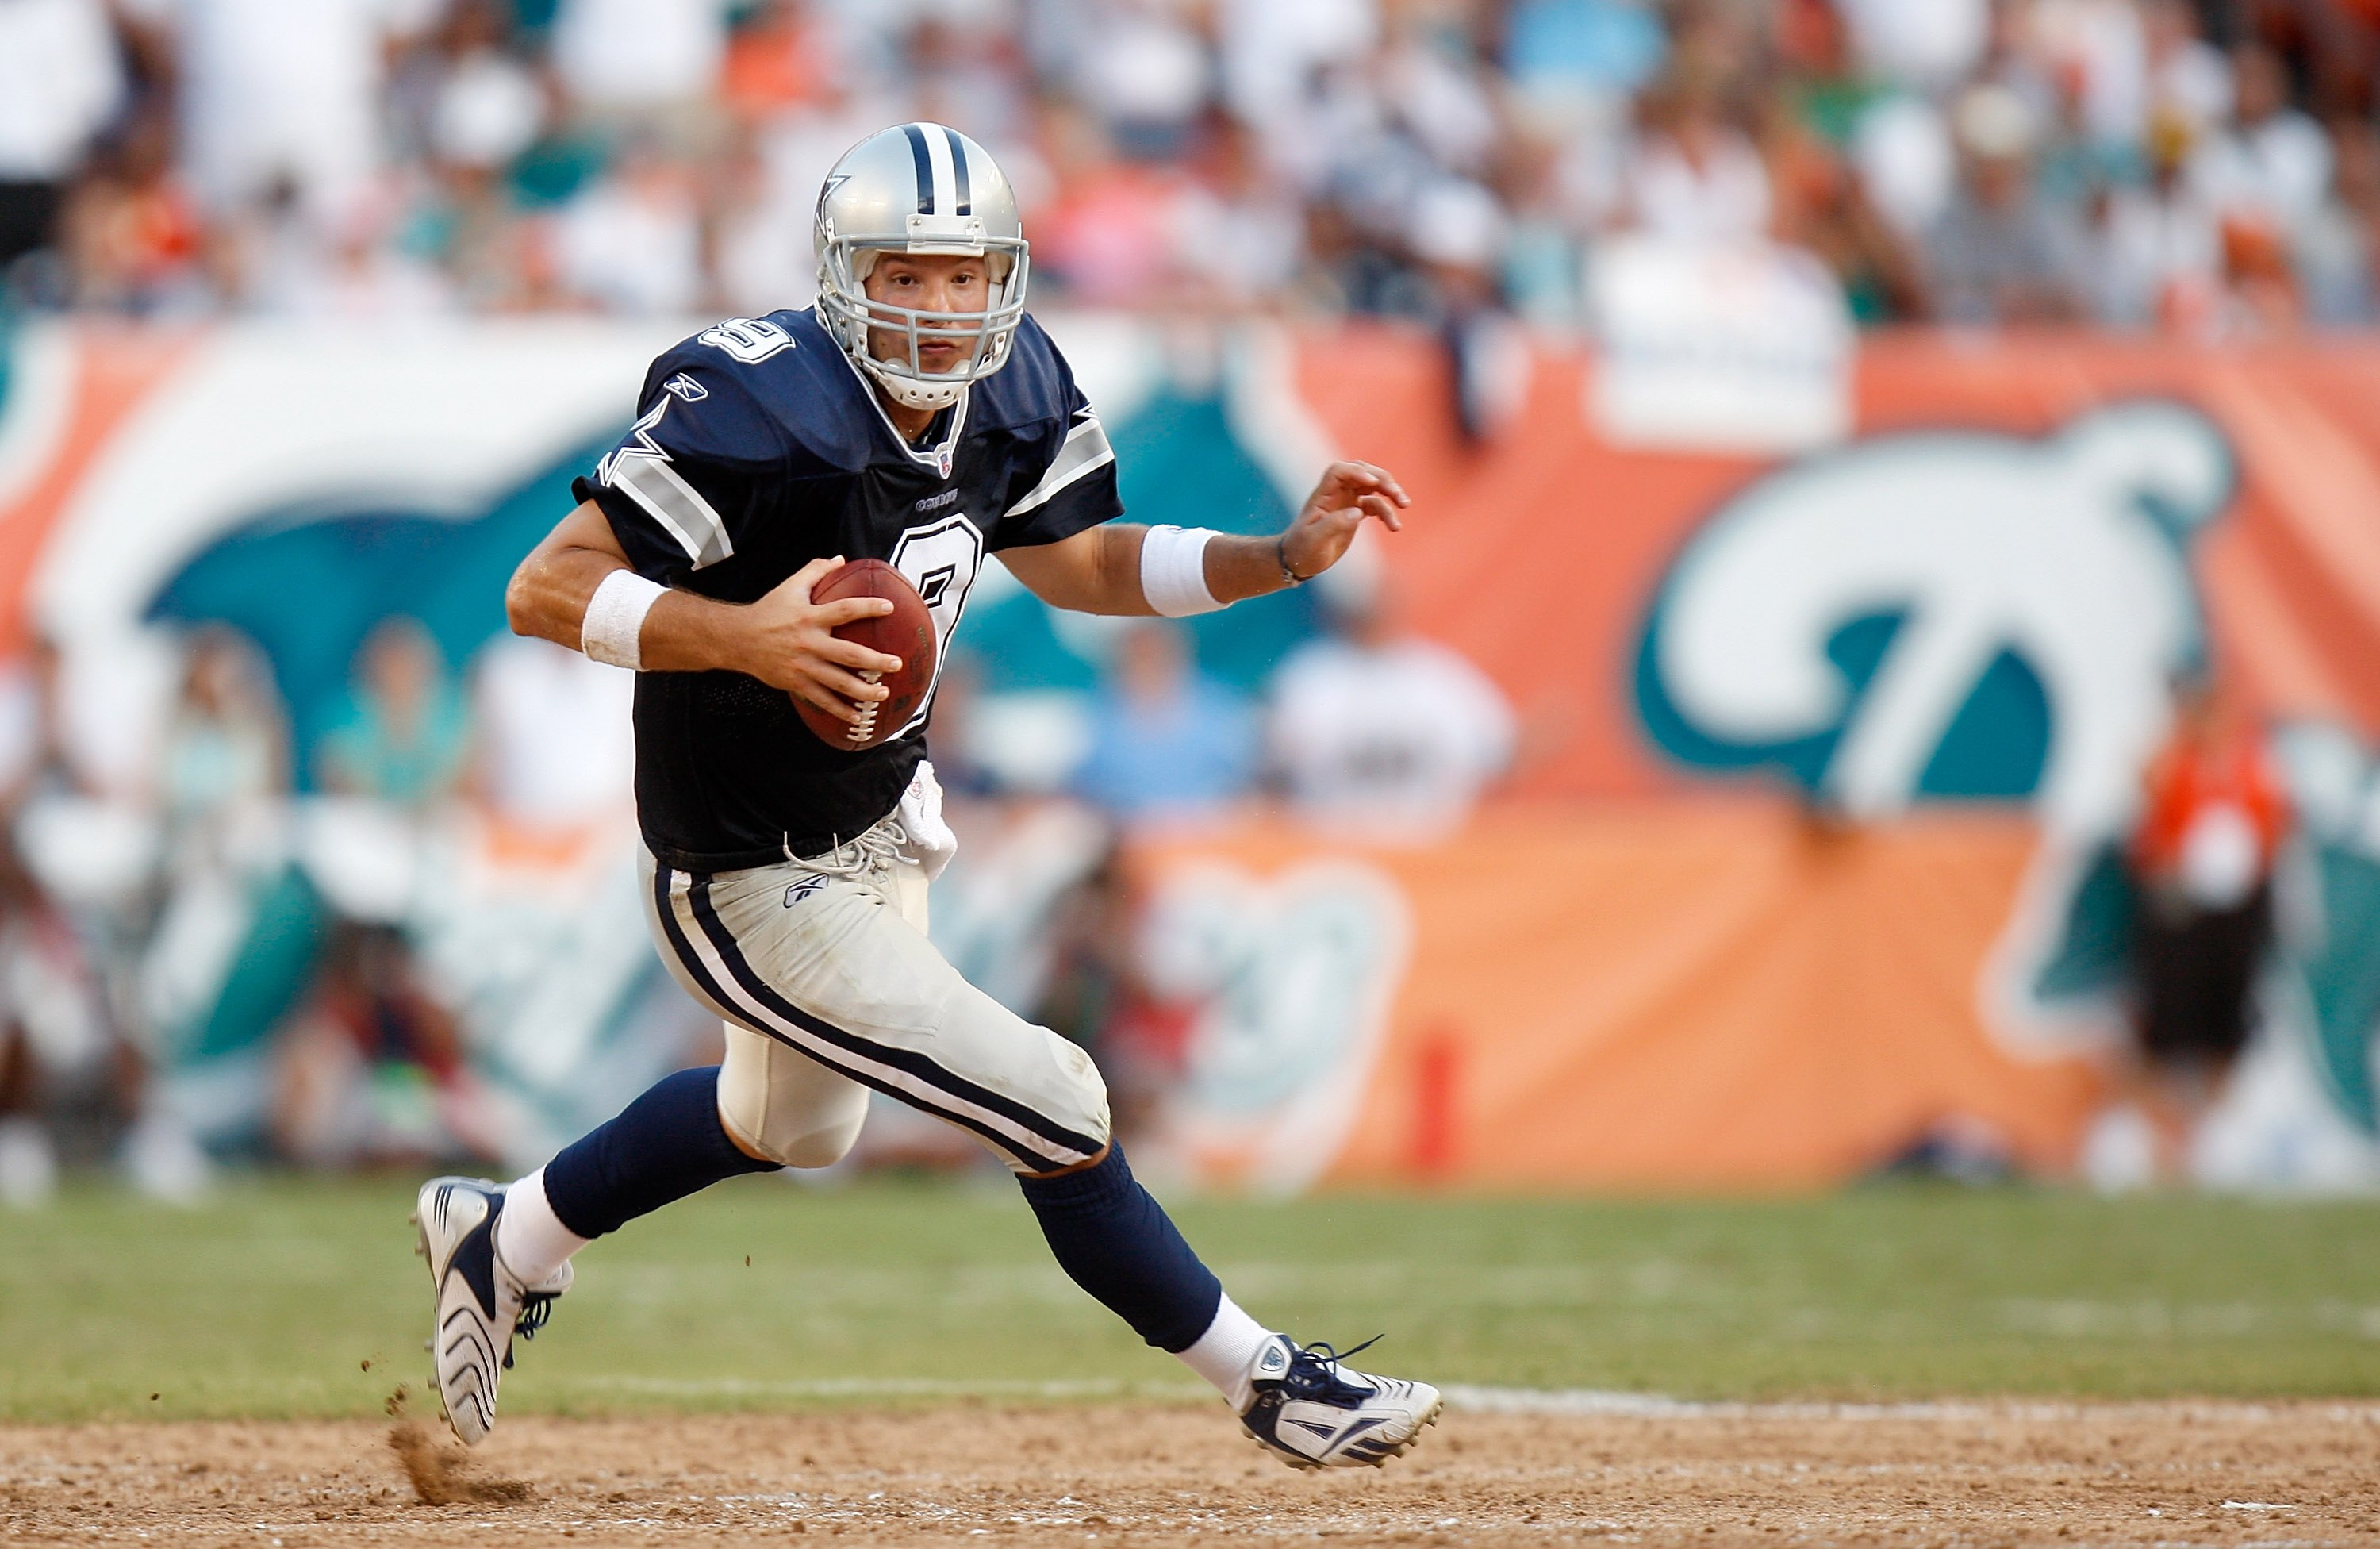 MIAMI - SEPTEMBER 16: Quarterback Tony Romo #9 of the Dallas Cowboys scrambles against the Miami Dolphins at Dolphin Stadium on September 16, 2007 in Miami, Florida. The Cowboys defeated the Dolphins 37-20.  (Photo by Allen Kee/Getty Images)